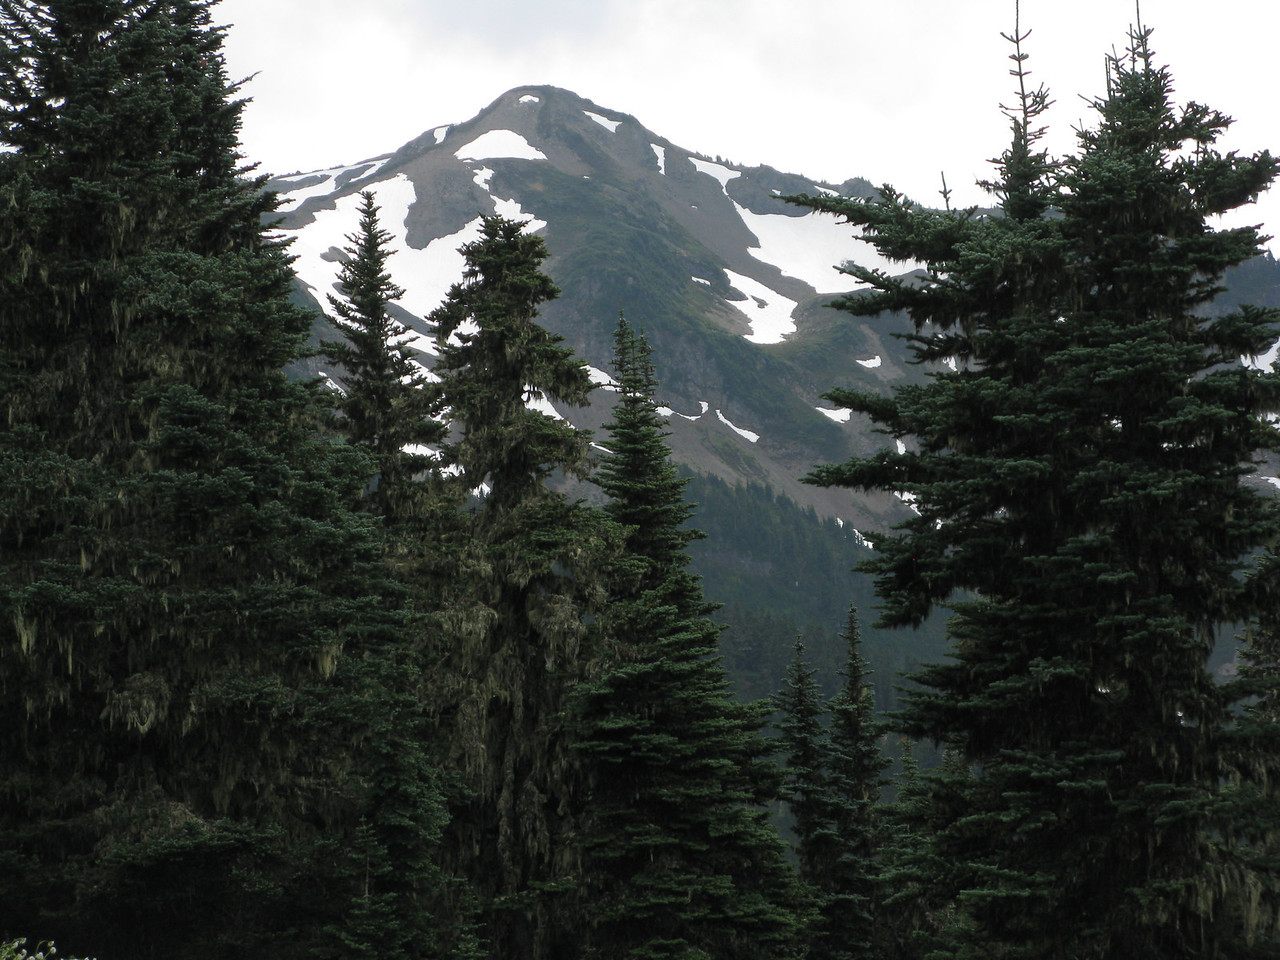 As we approach the ridge, we can see snow spotted mountains in the distance.